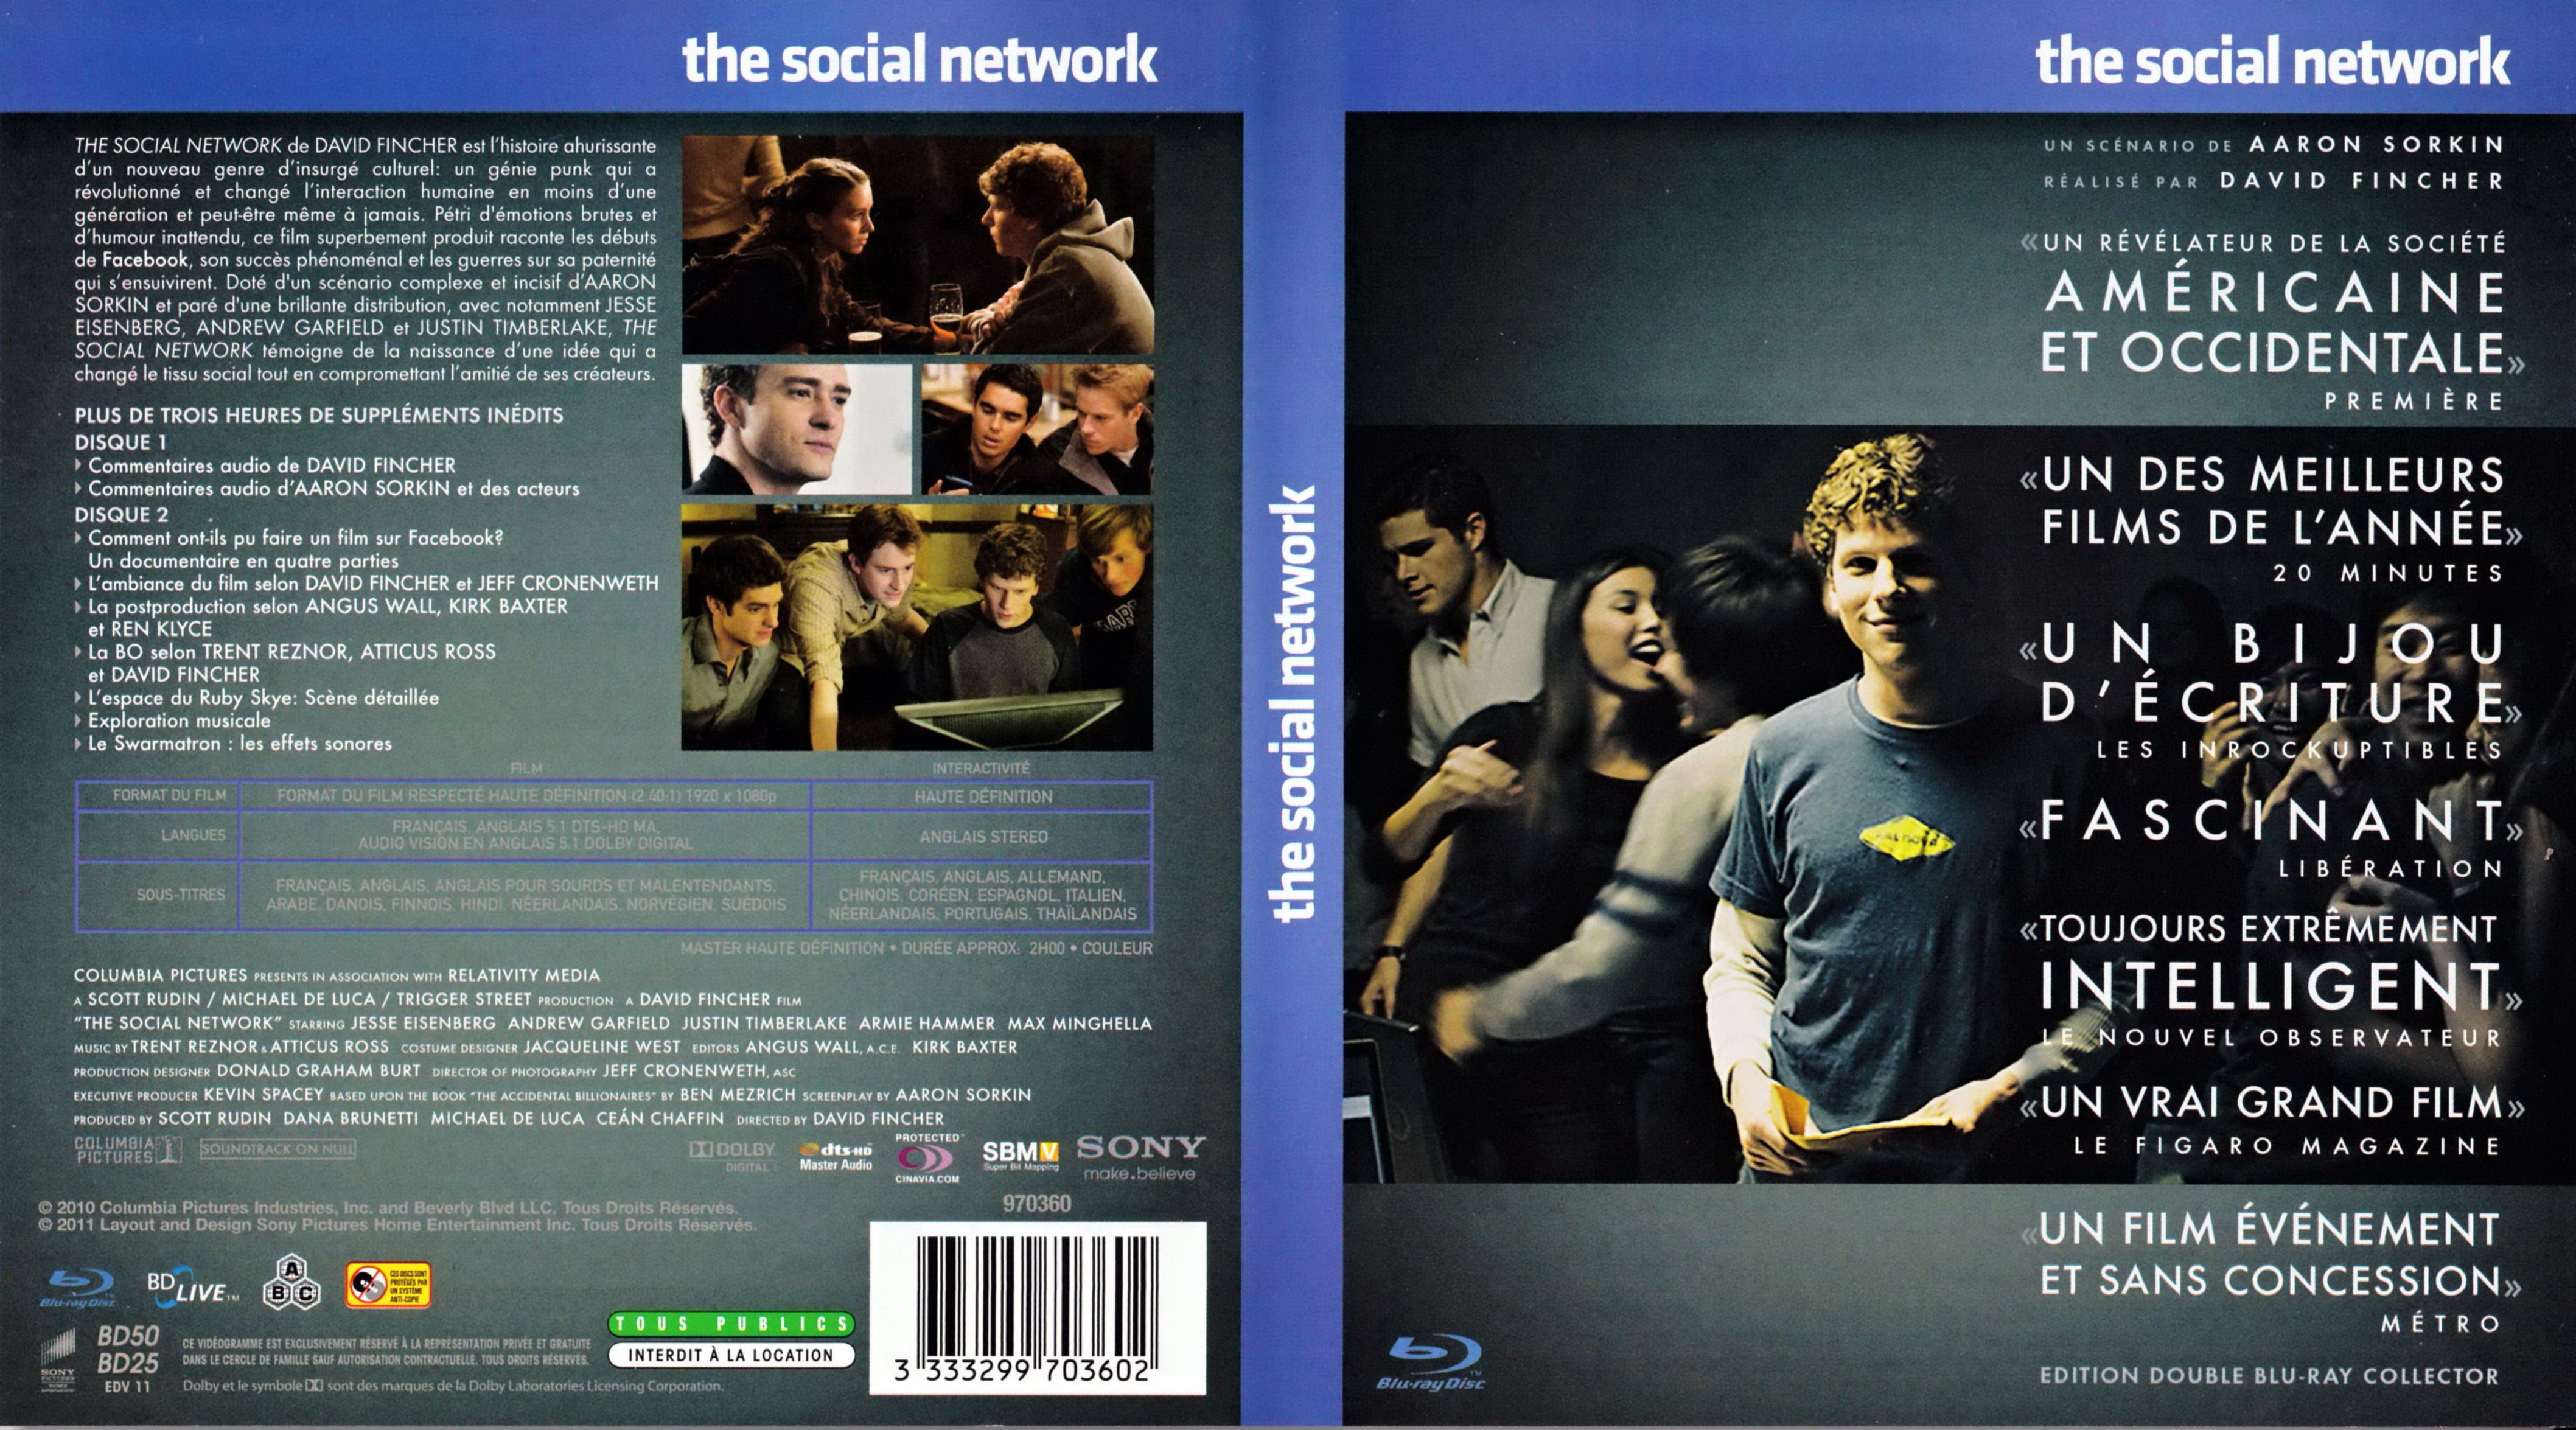 -=THE SOCIAL NETWORK=-